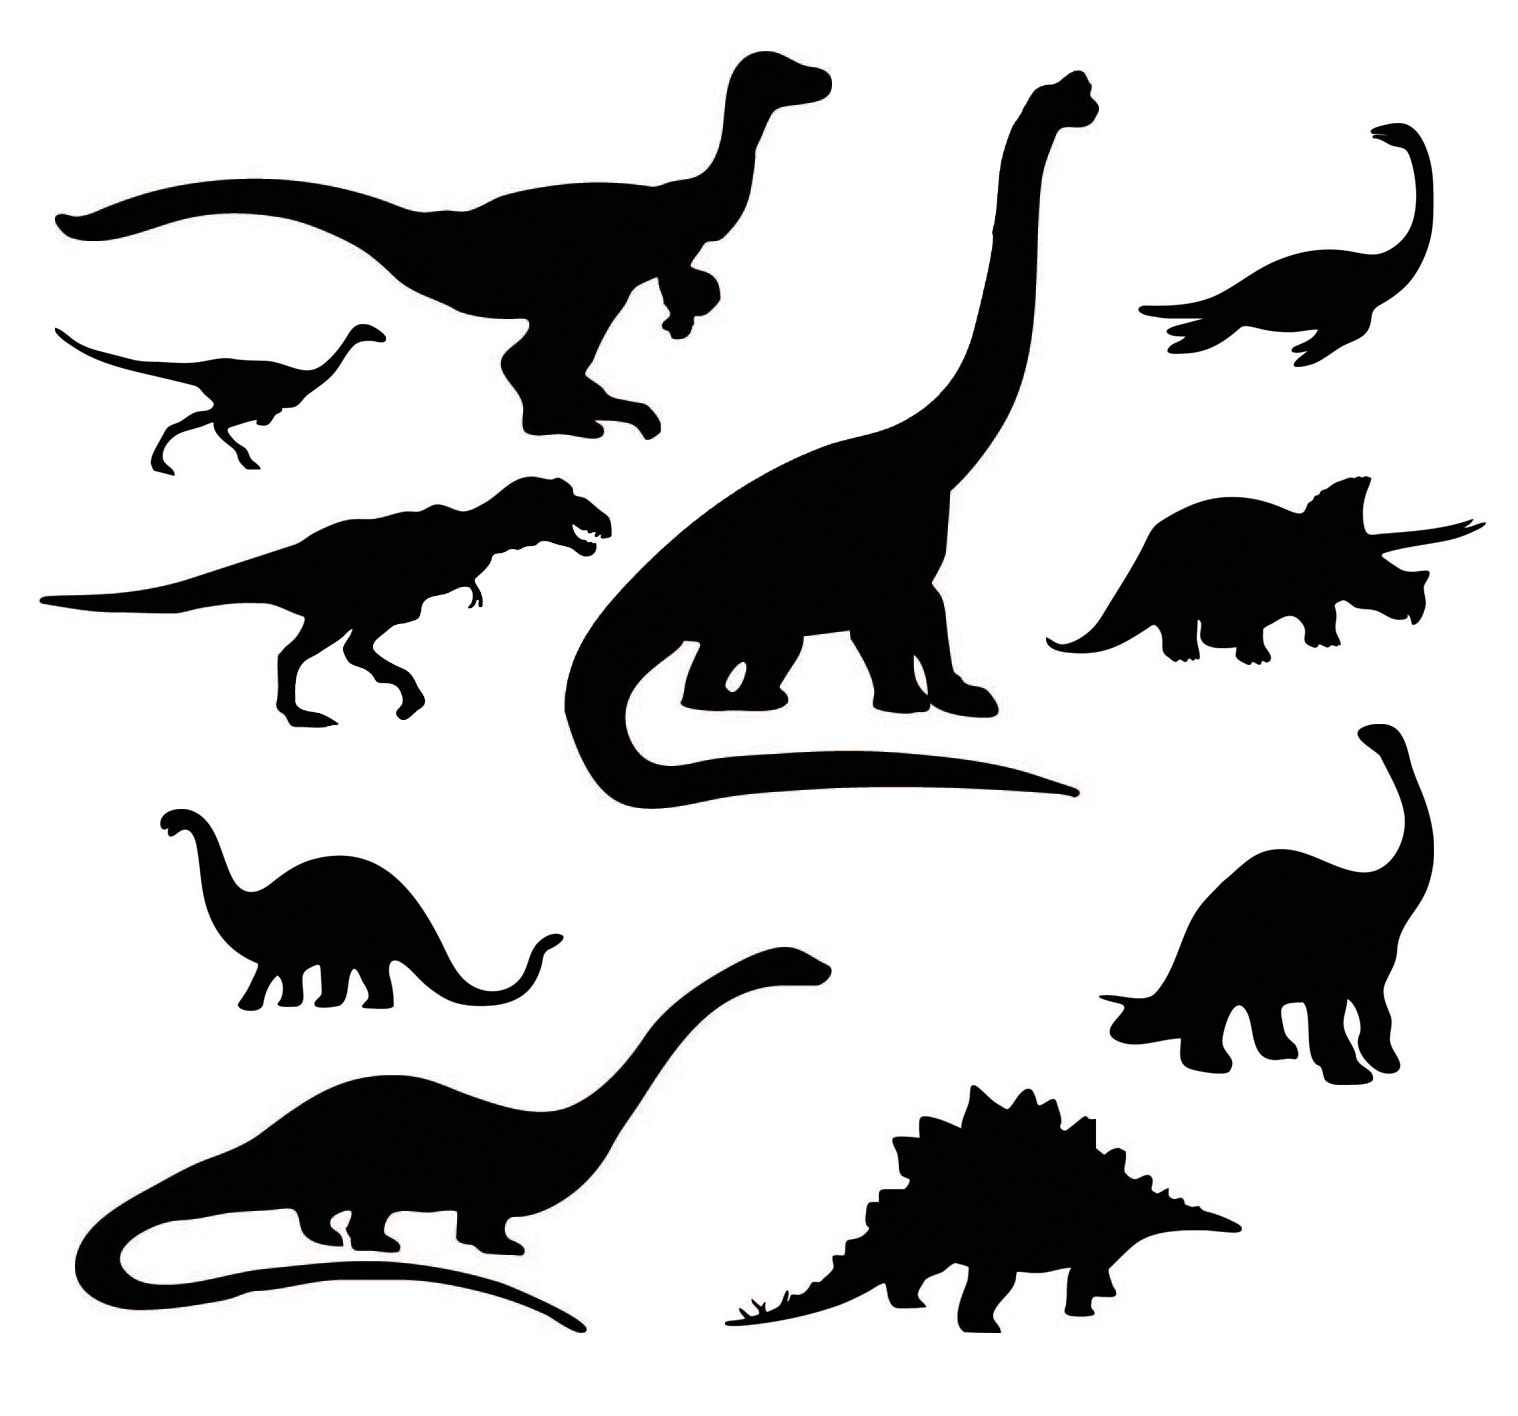 Download Free svg files of dinosaures | Dinosaur silhouette, Svg ...